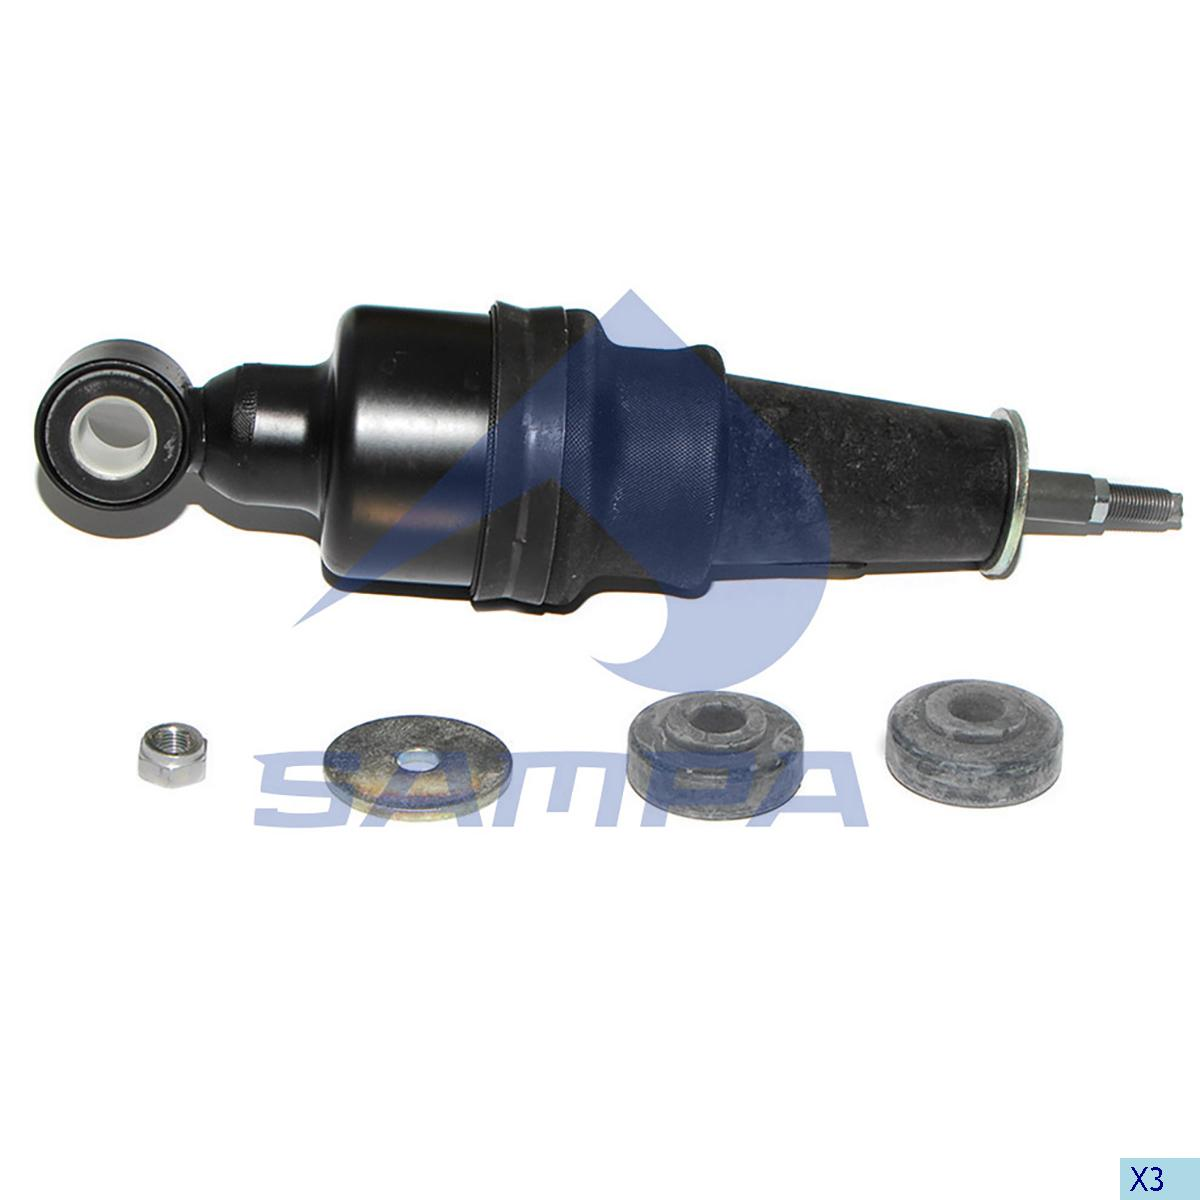 Shock Absorber, with Air Bellow, Cab, Daf, Cab